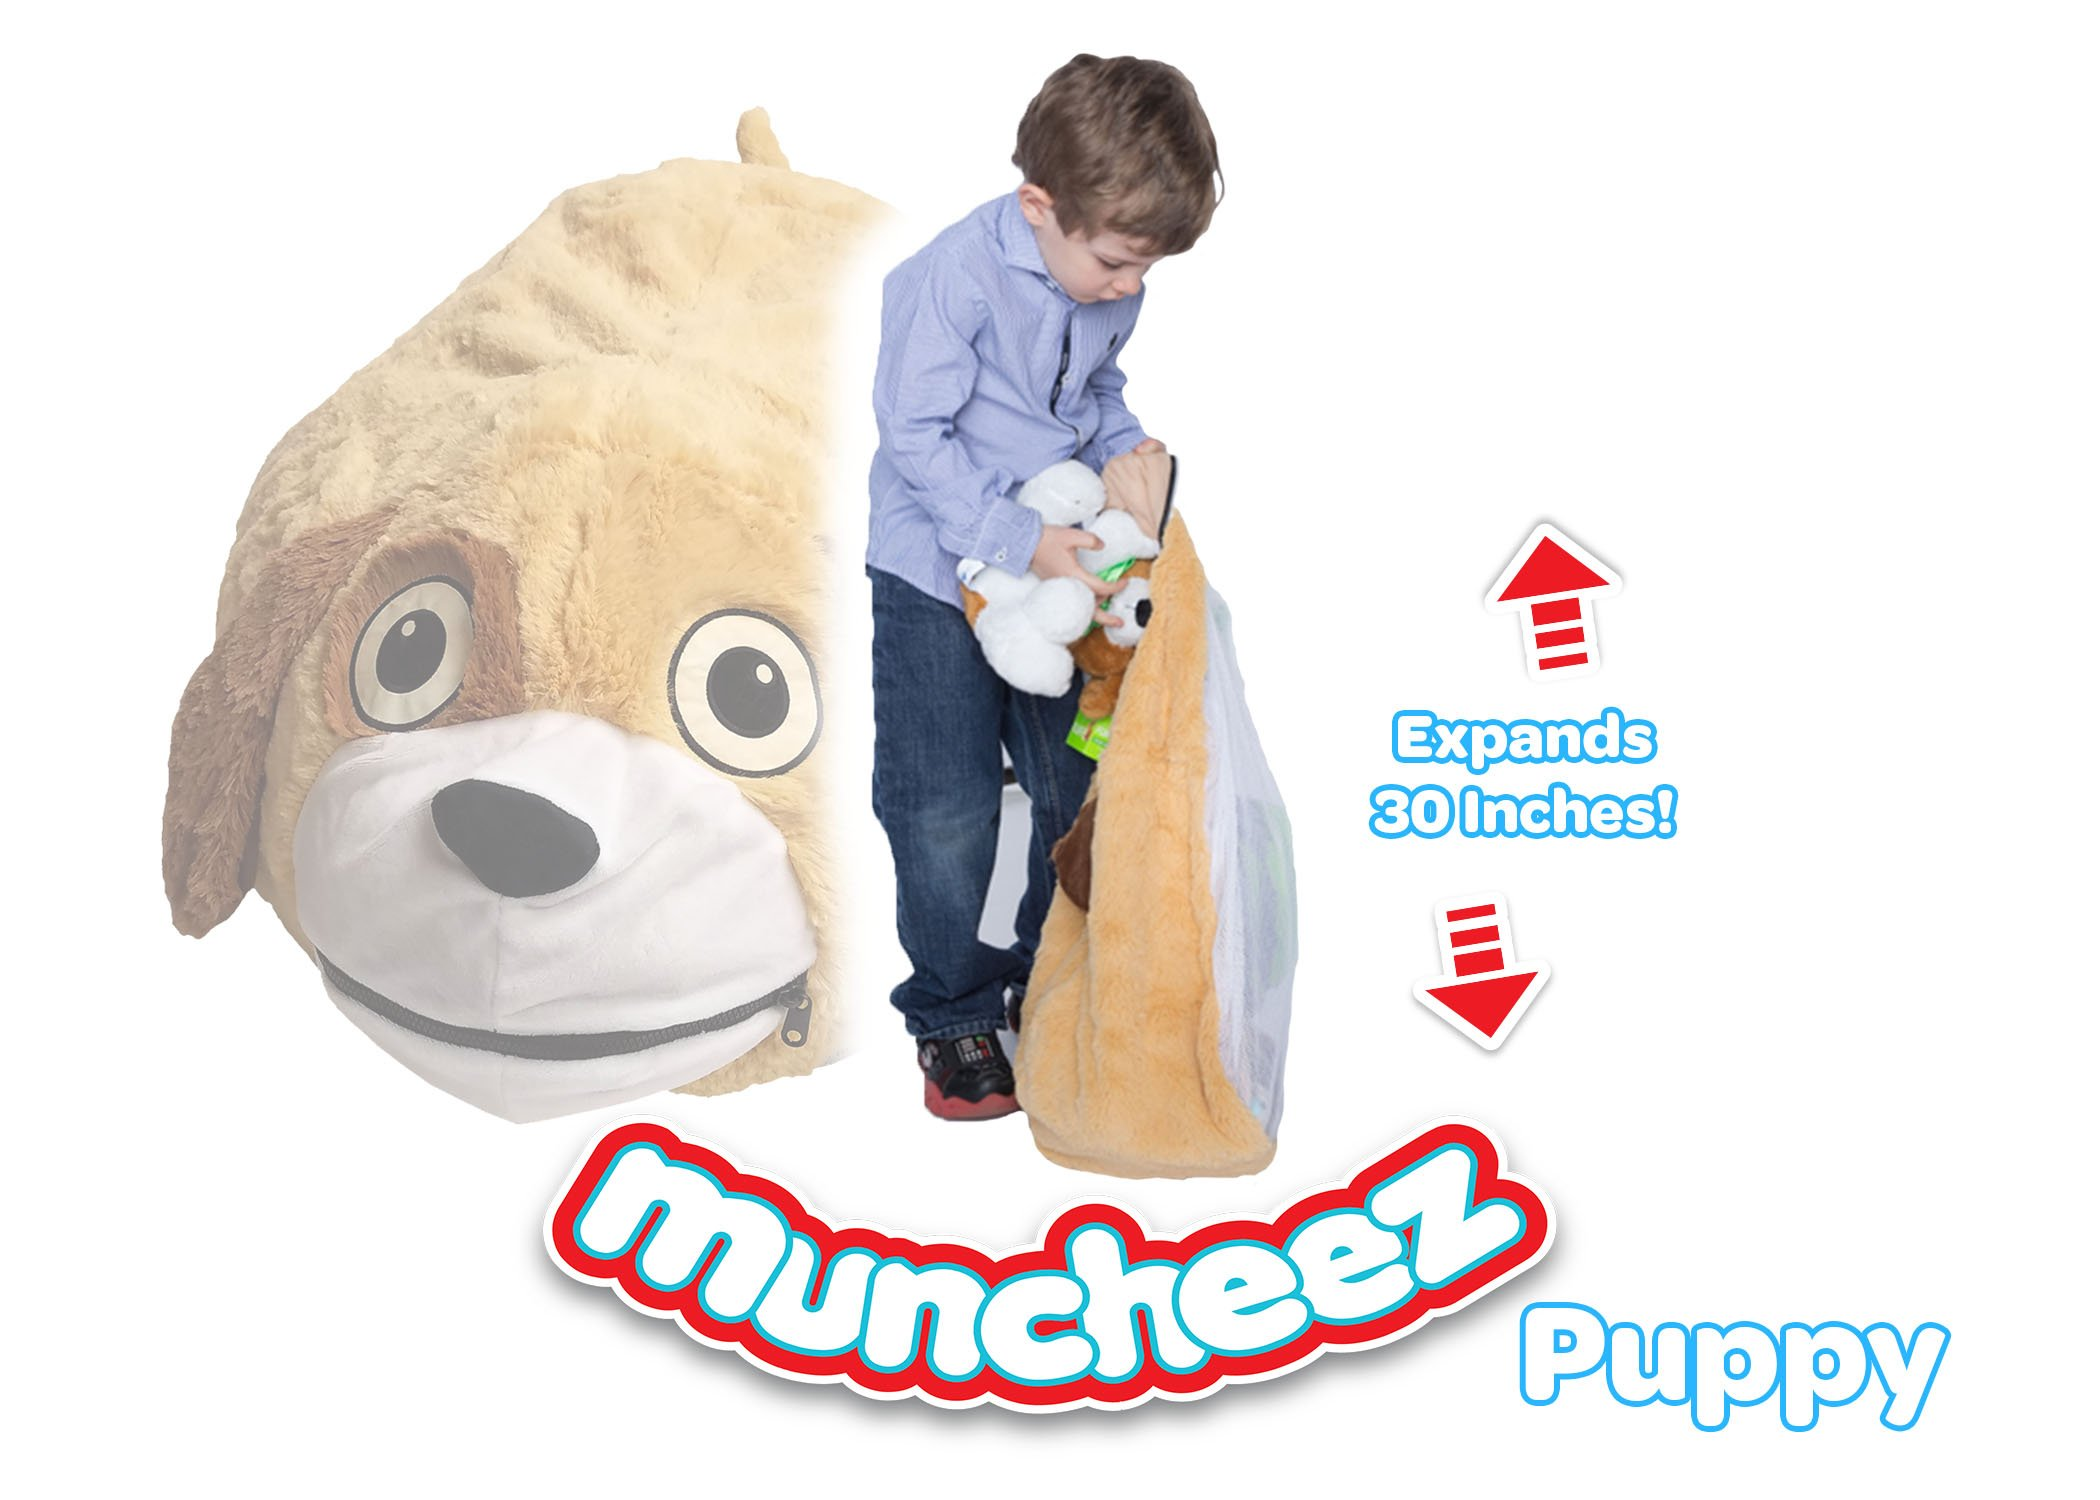 Muncheez Stuffed Animal Toy Storage for Children, Puppy - Perfect for Kids - SUPER SOFT Fabric - 7 Plush Animal Choices - Upgrade Your Mesh Toy Nets & Toy Hammock - Extra Storage for Your Toys